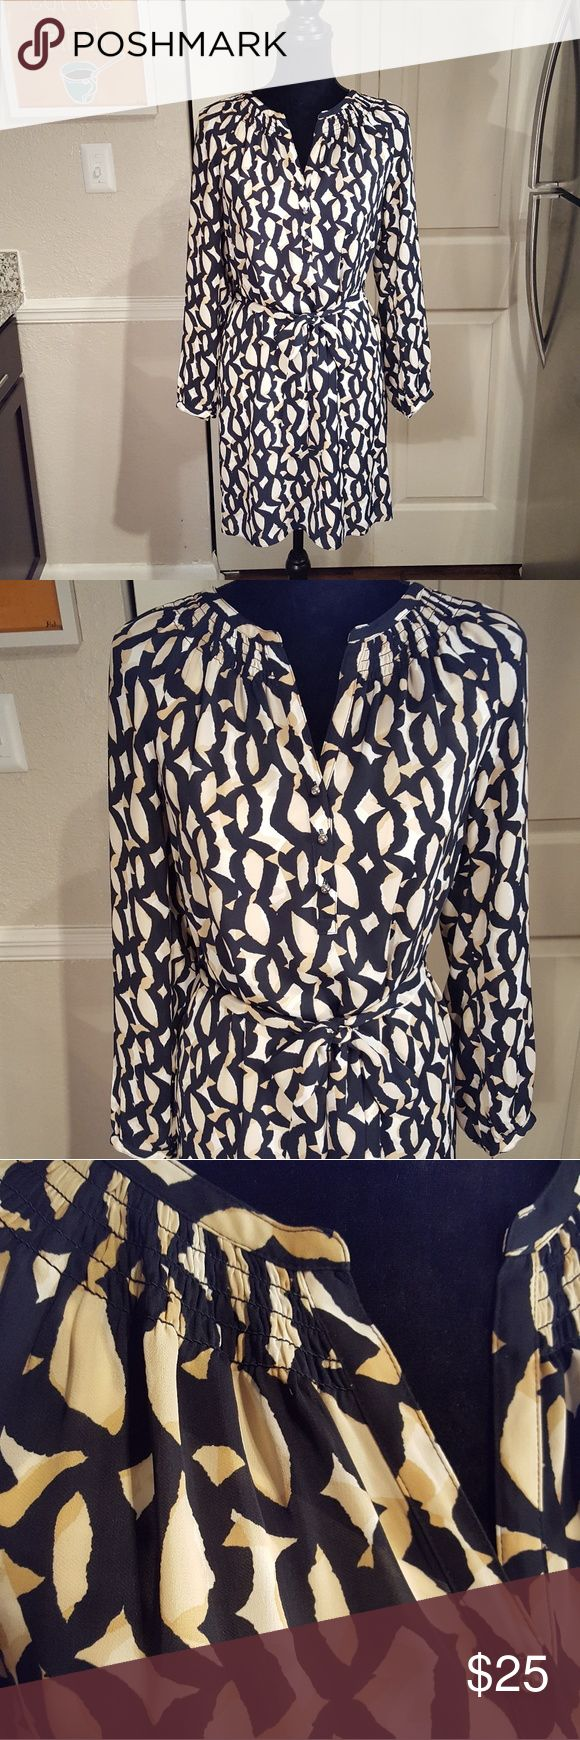 Banana Republic Sheer Geometric Print Shirt Dress Excellent. Gently owned. Smoke free environment. Ships within 1-2 business days.   All laying flat Bust- 18 inches from arm pit to arm pit. Length- 35 inches from shoulder seam to bottom hem. Waist- Doesn't have a defined waist. 19.25 inches across where belt falls. Banana Republic Dresses Midi